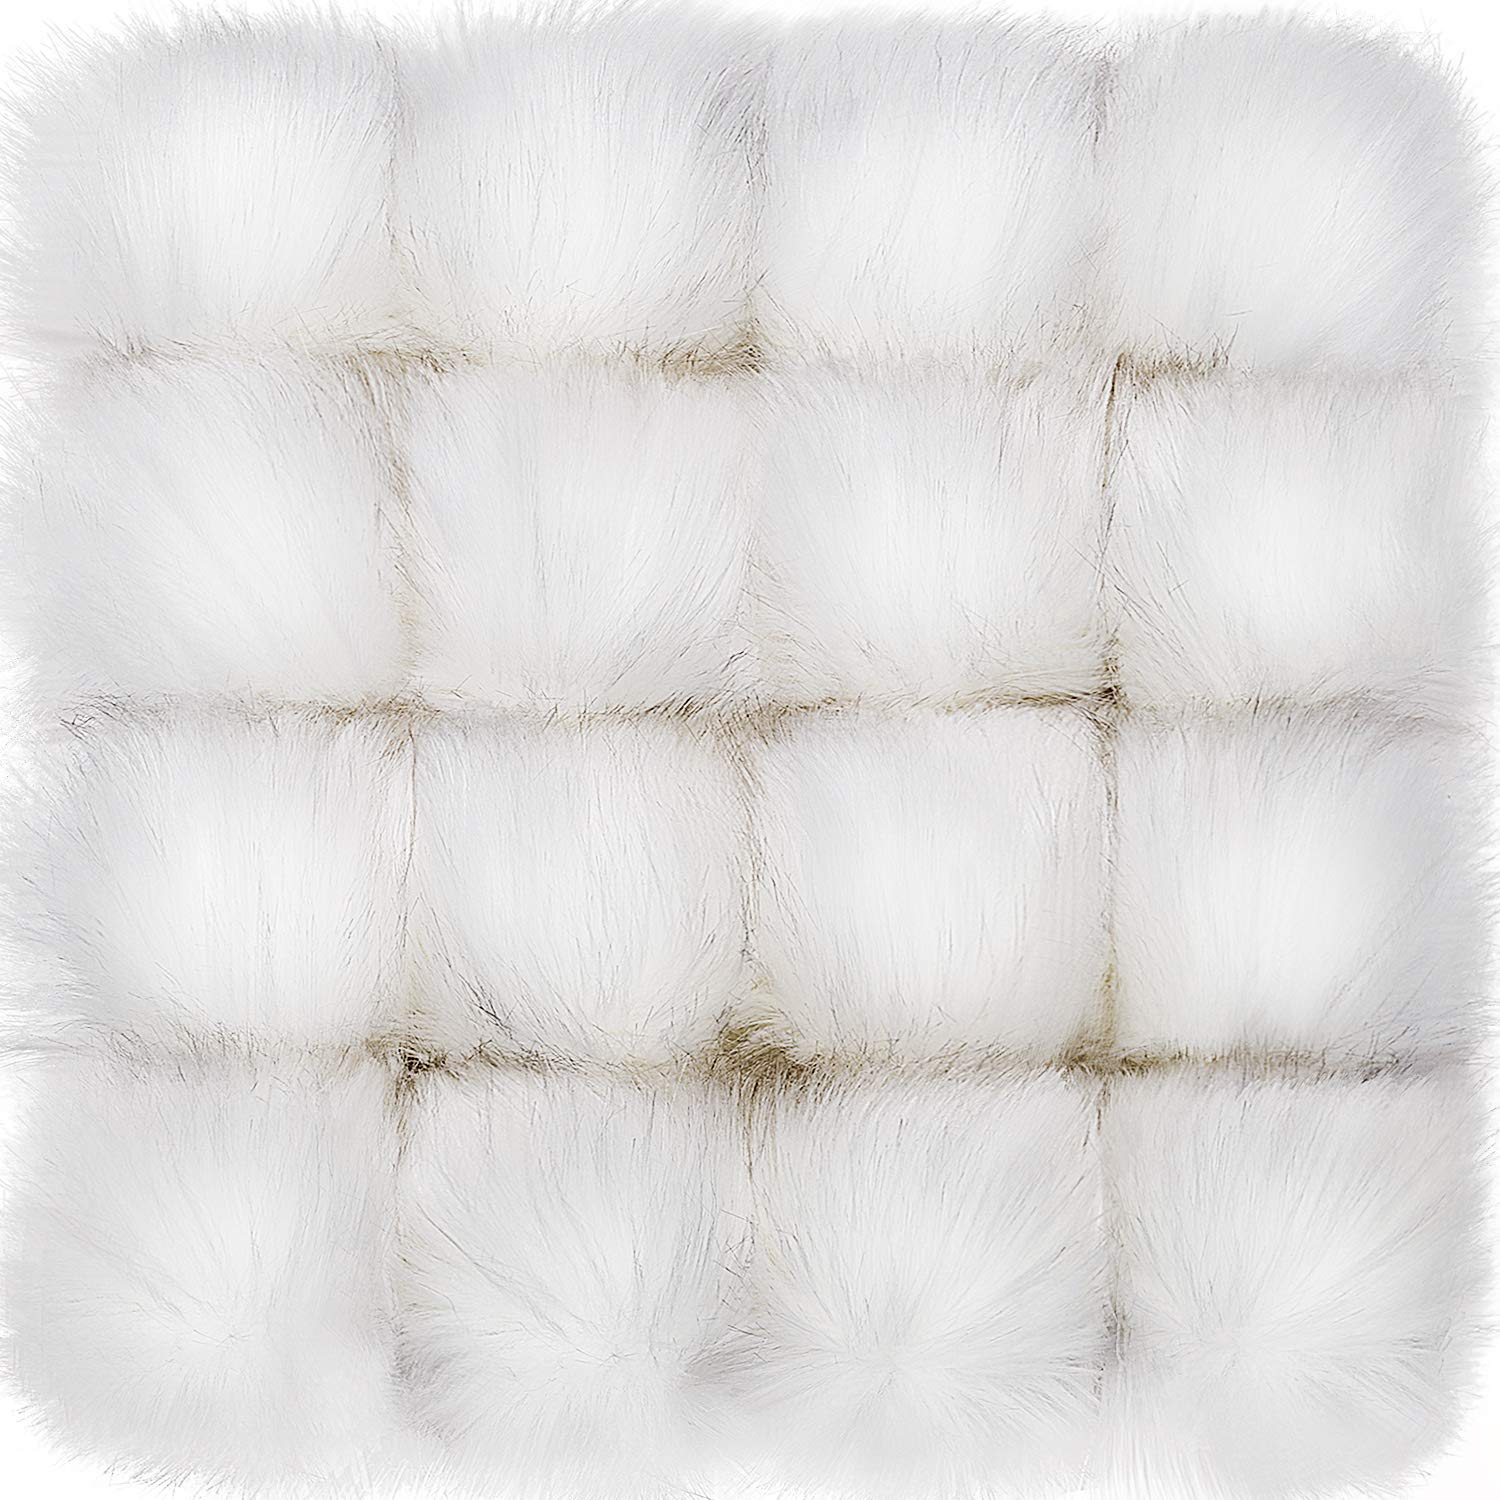 Tatuo Faux Fur Pom Pom Ball DIY Fur Pom Poms for Hats Shoes Scarves Bag Pompoms Keychain Charms Knitting Hat Accessories (White, 16) by Tatuo